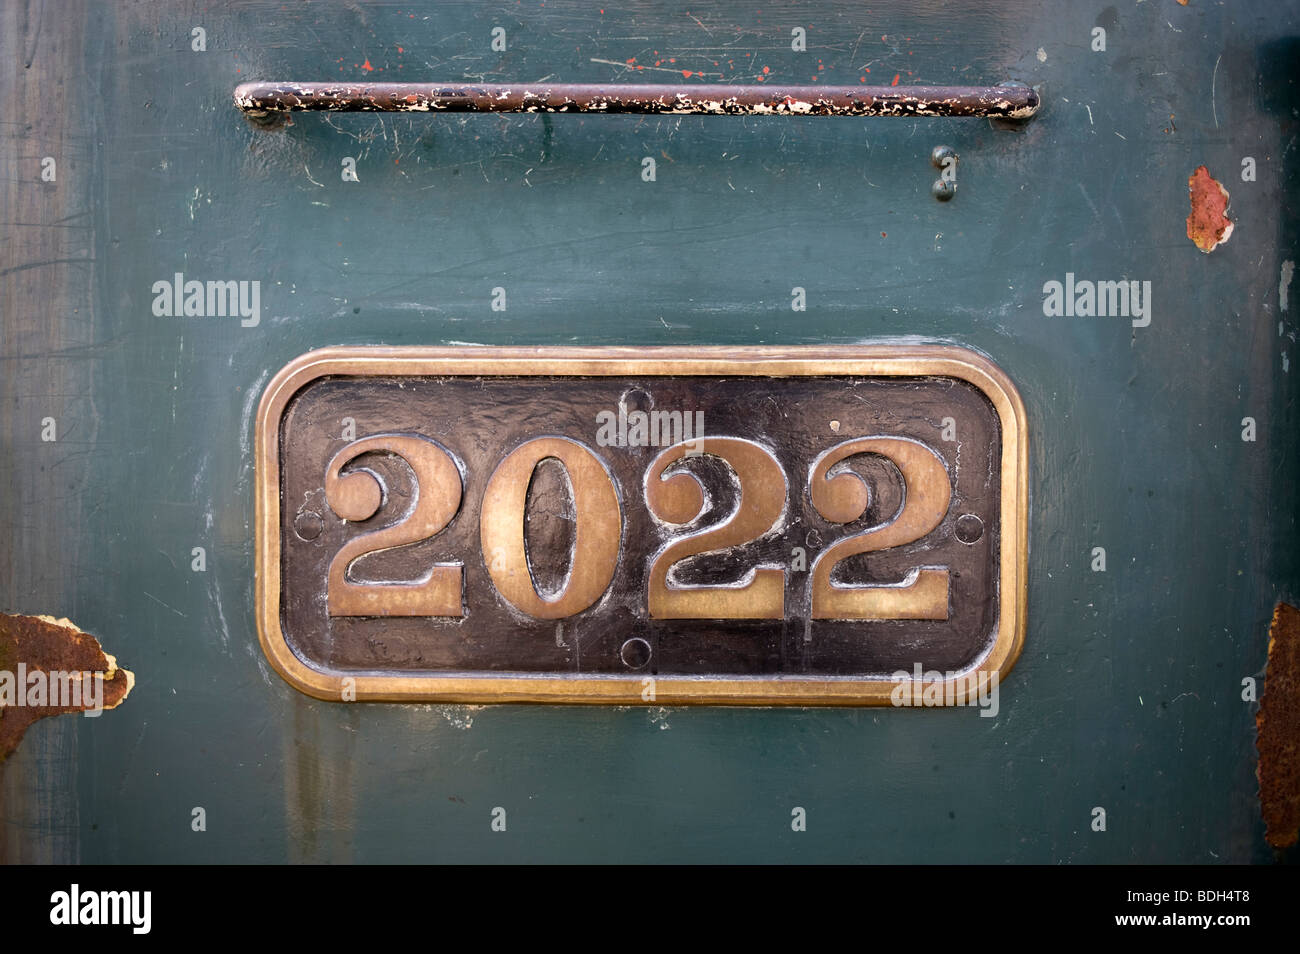 Engine Number - Stock Image